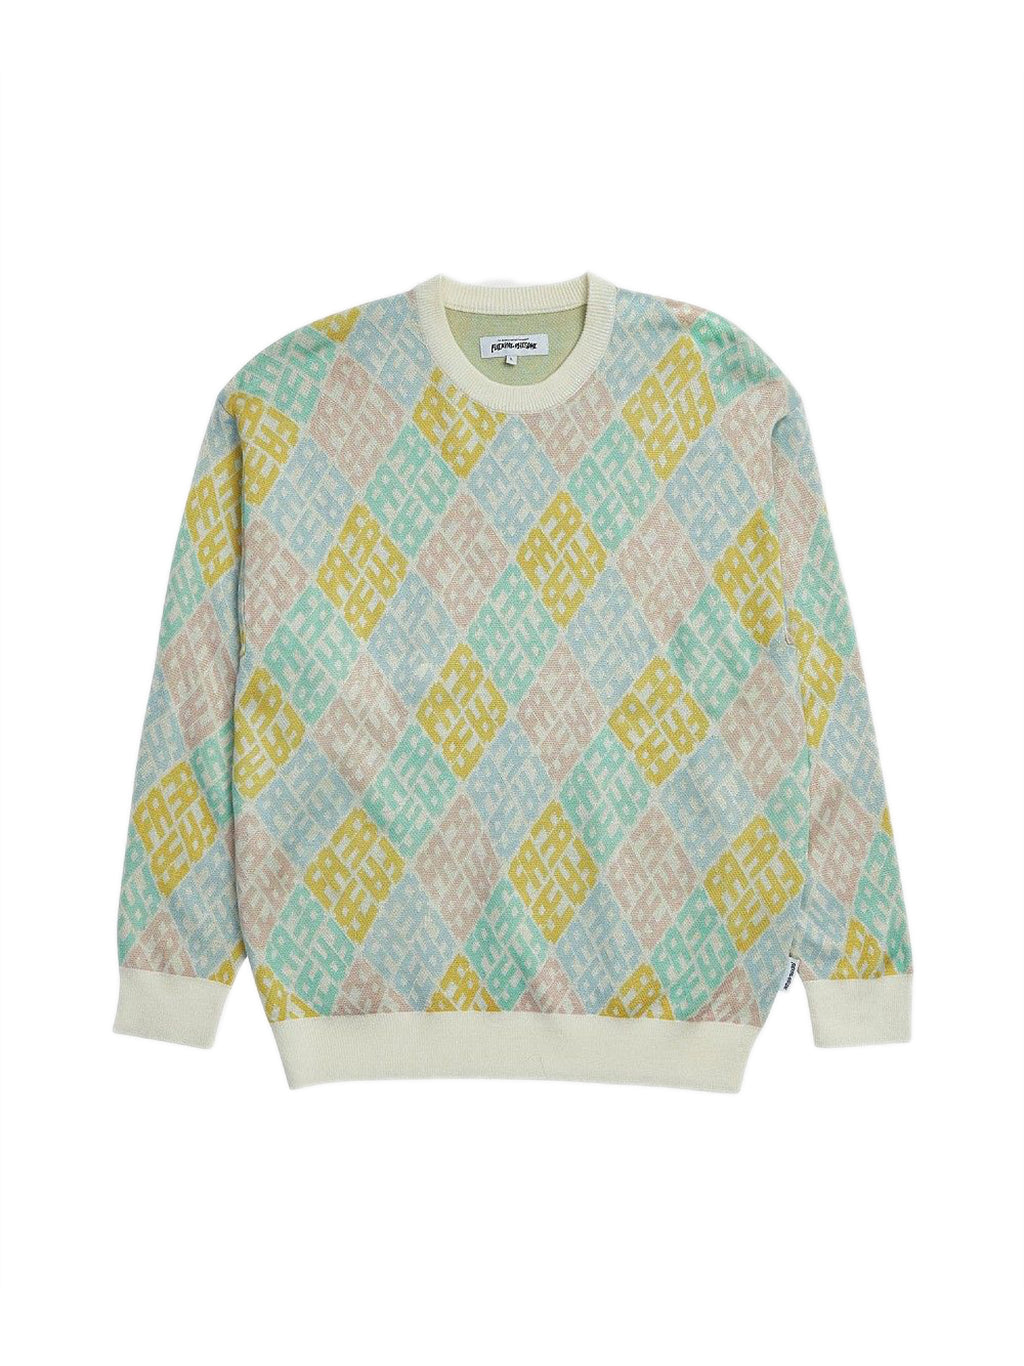 Multi Monogram Crewneck Sweater